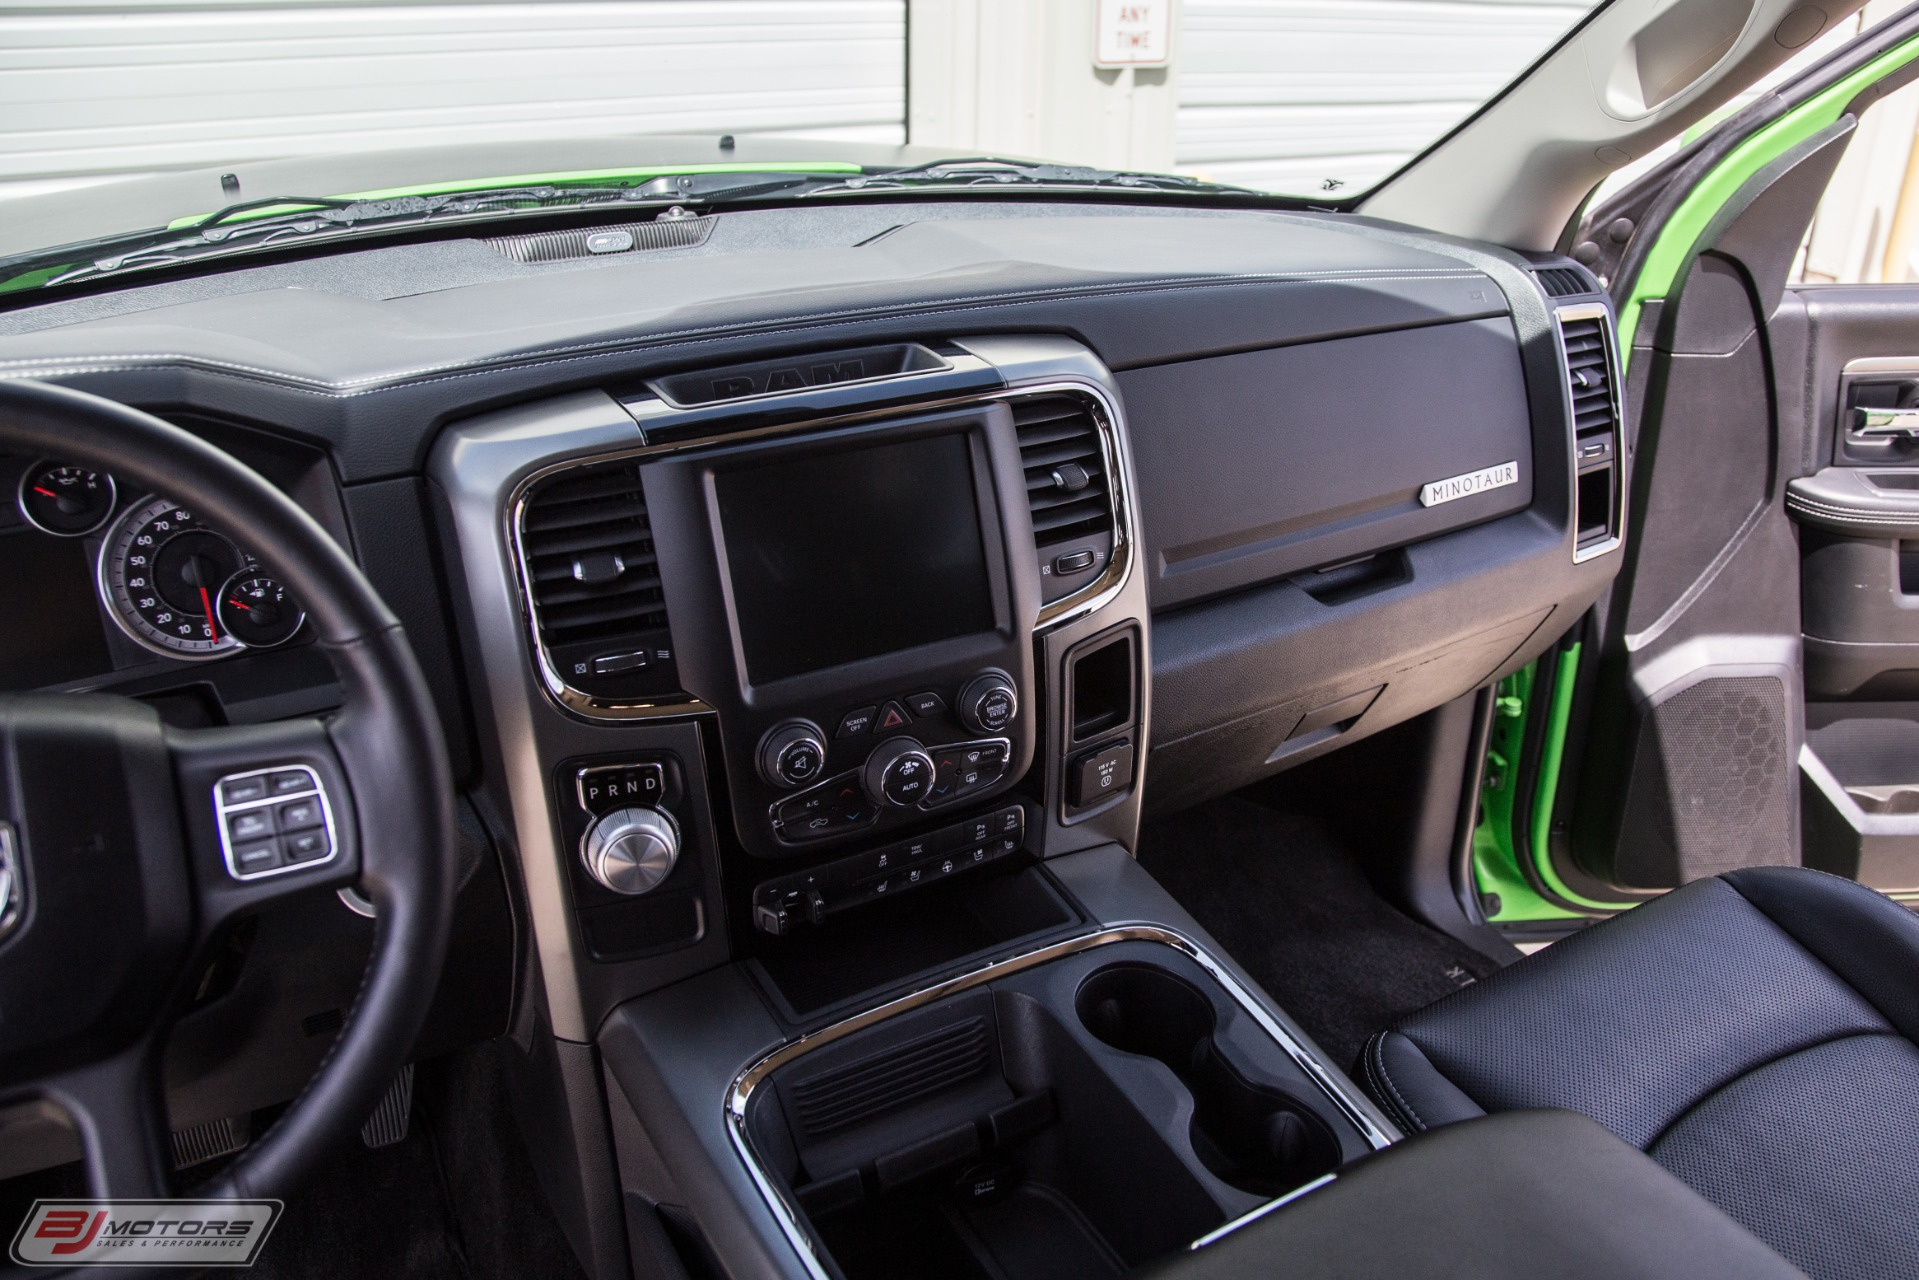 Used-2016-Dodge-Ram-1500-Minotaur-Tequila-Lime-Limited-Production-64-Supercharged